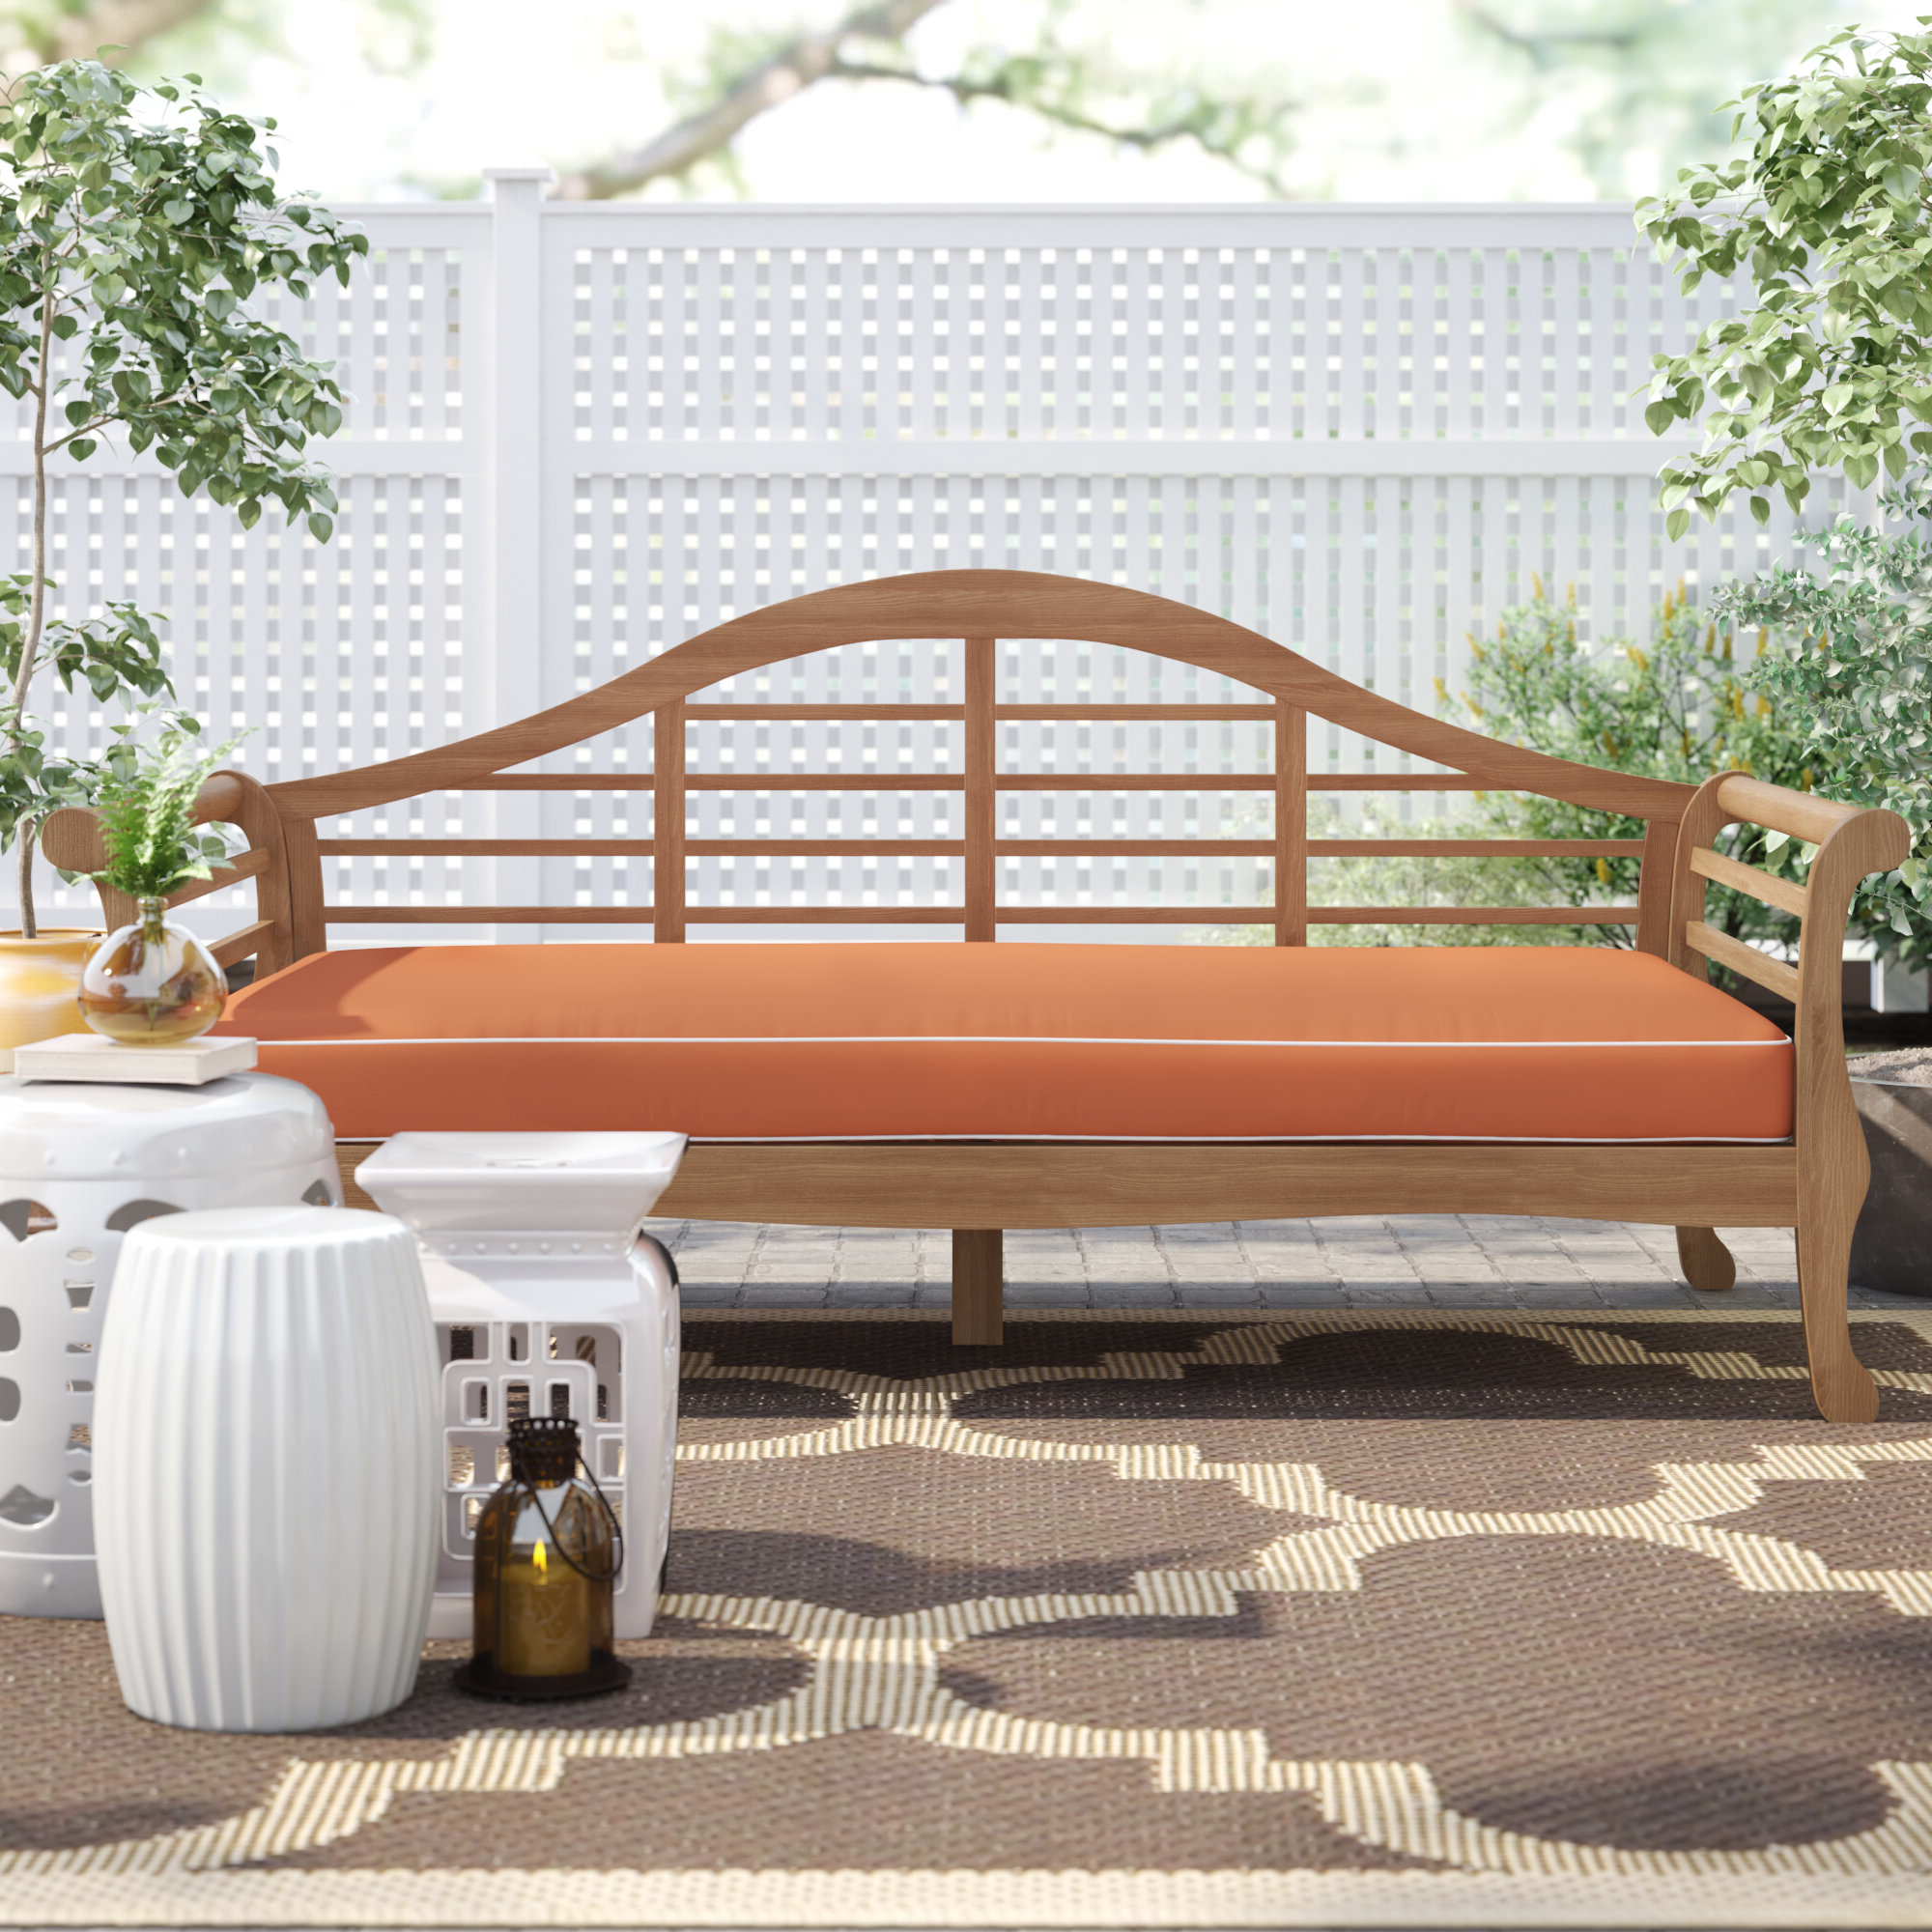 2019 Summerton Teak Patio Sofa With Cushions Intended For Beal Patio Daybeds With Cushions (View 1 of 25)